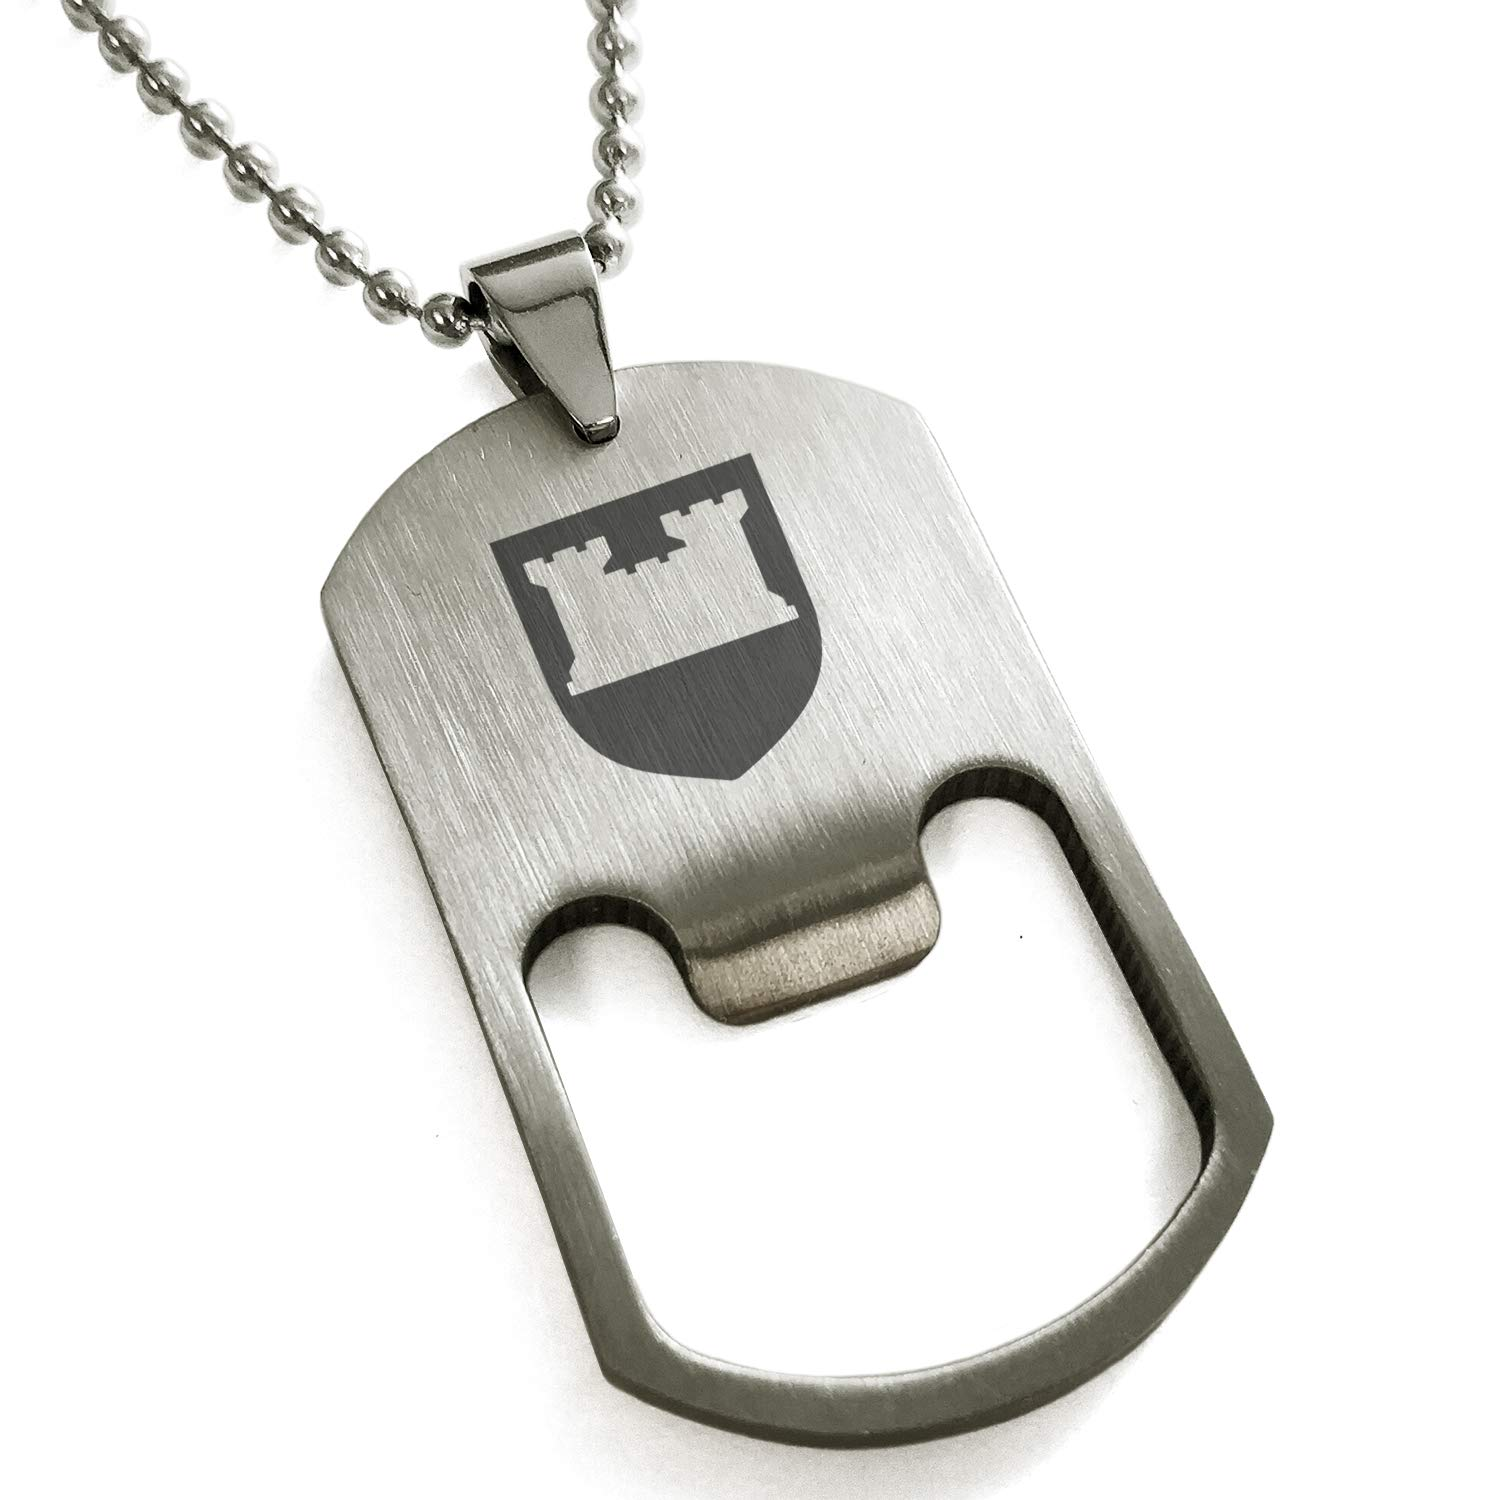 Tioneer Stainless Steel Castle Protection Coat of Arms Shield Engraved Bottle Opener Dog Tag Pendant Necklace